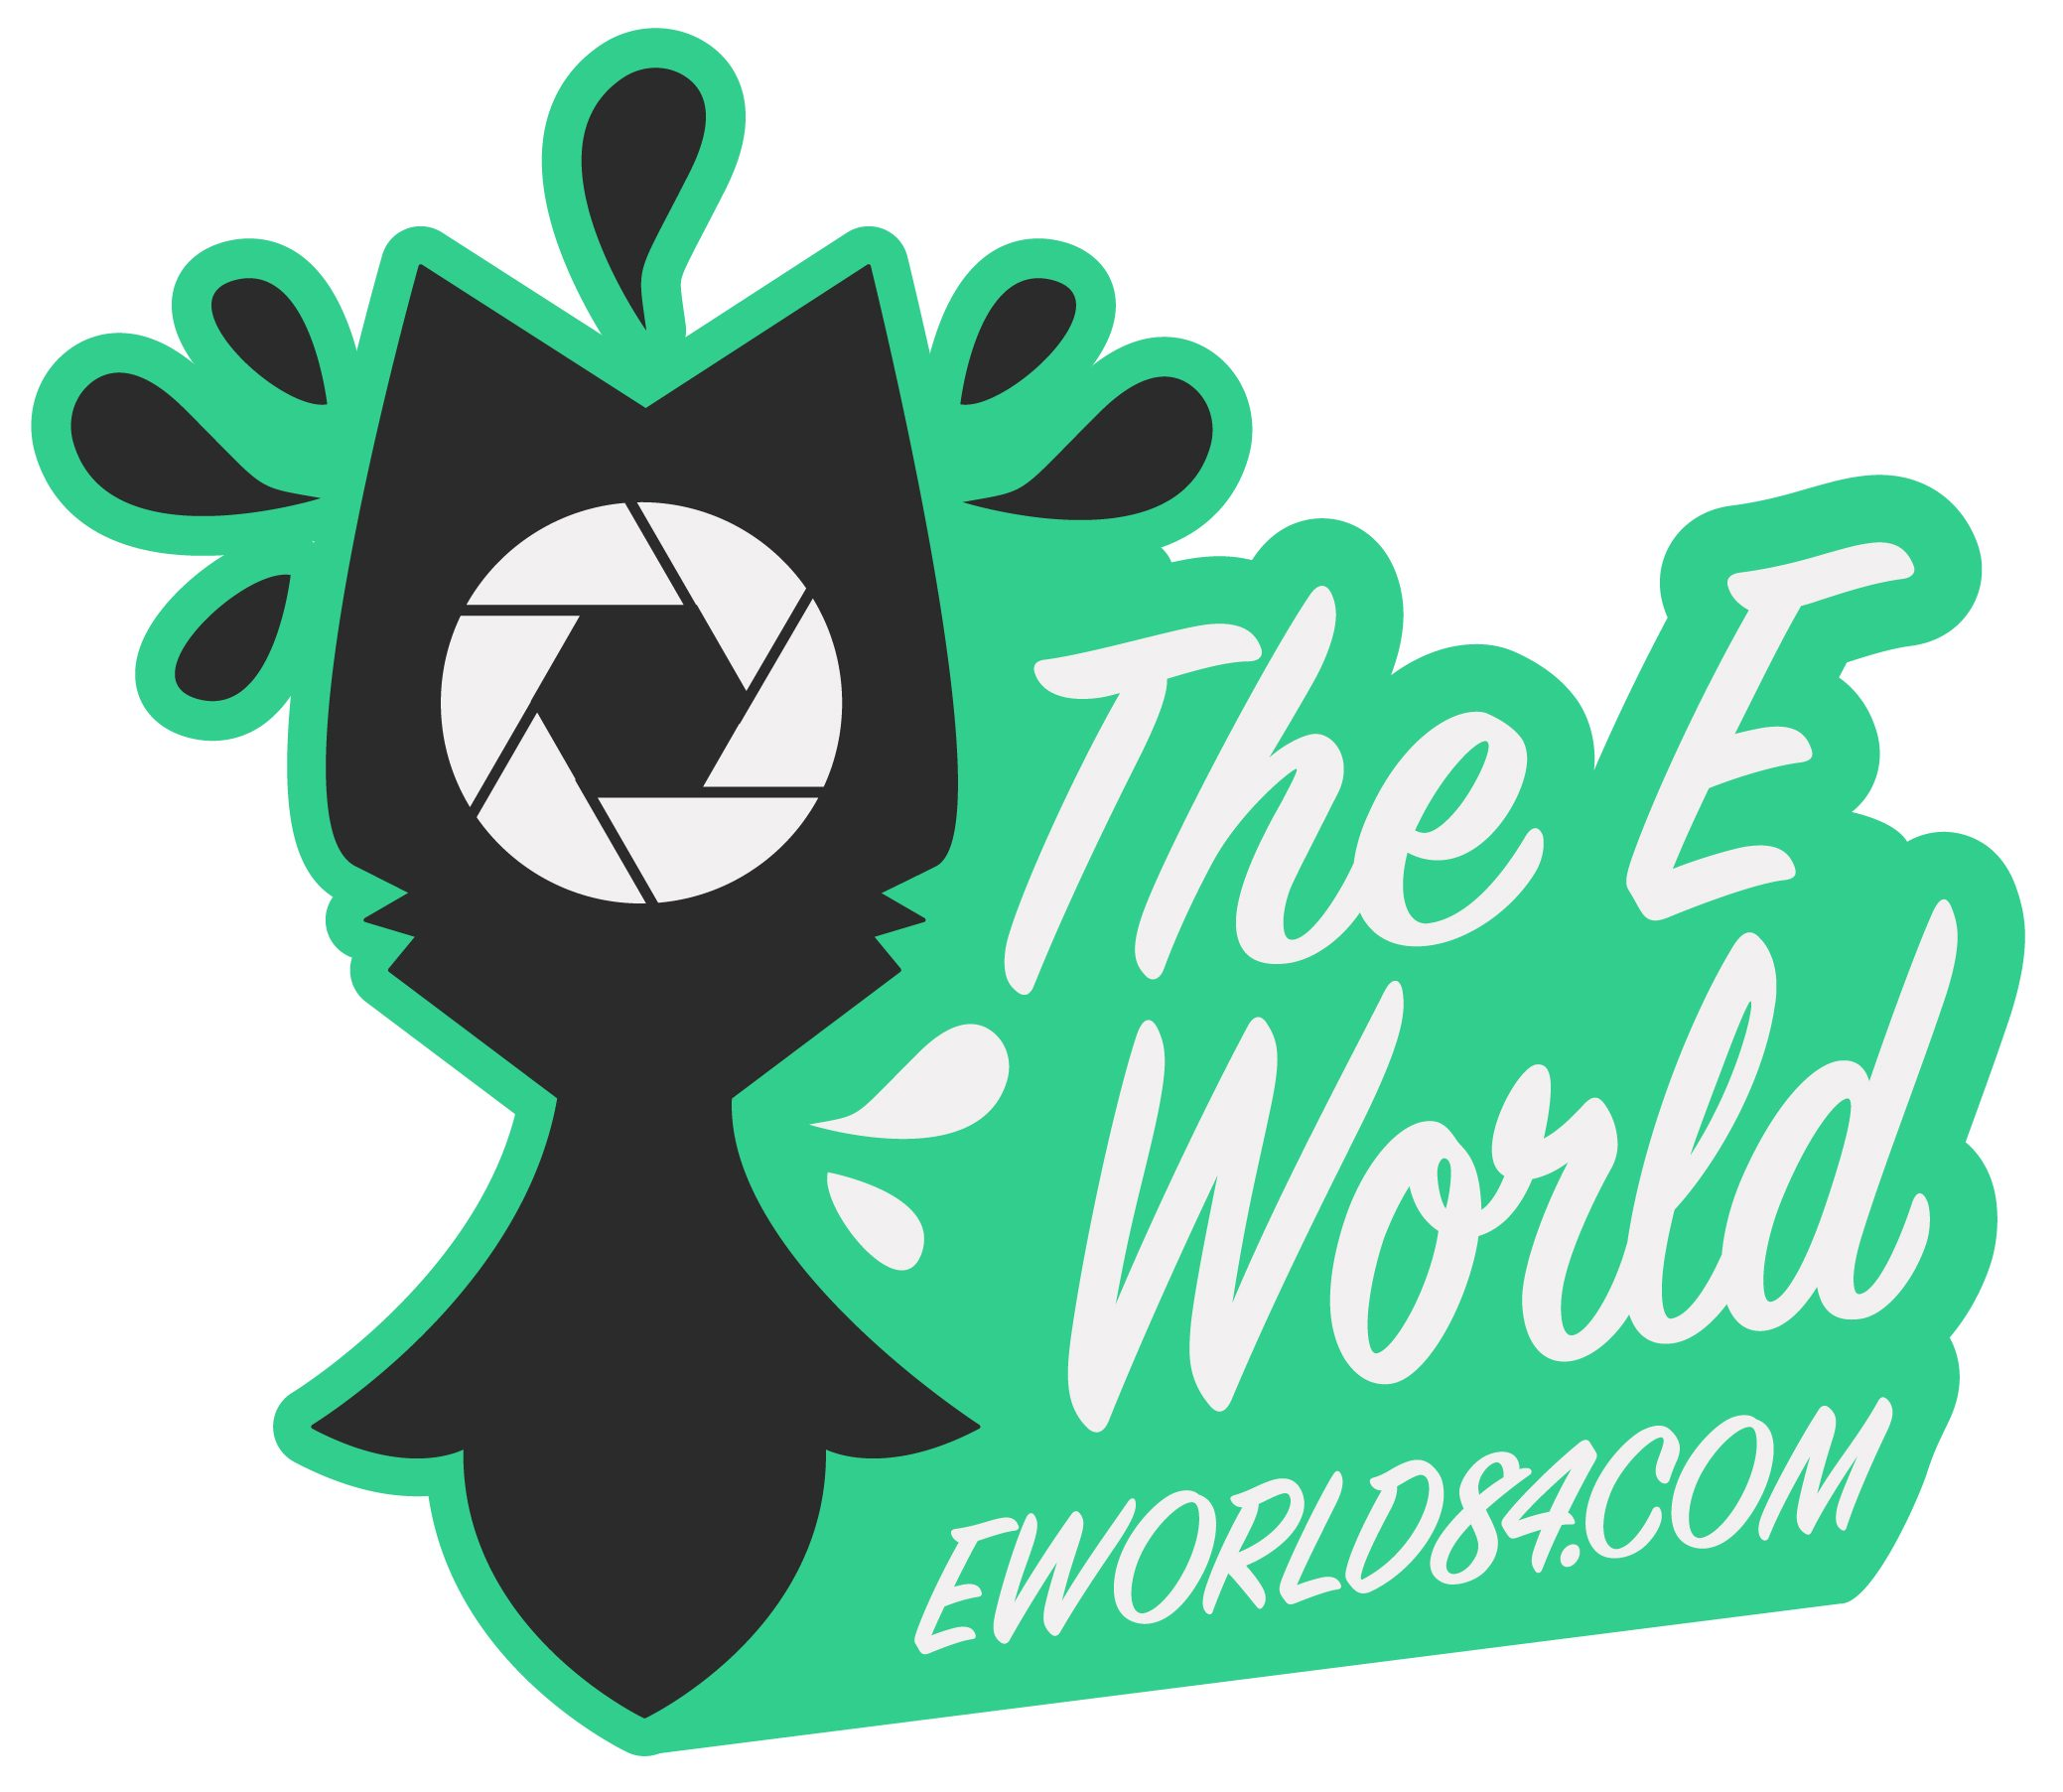 The E world